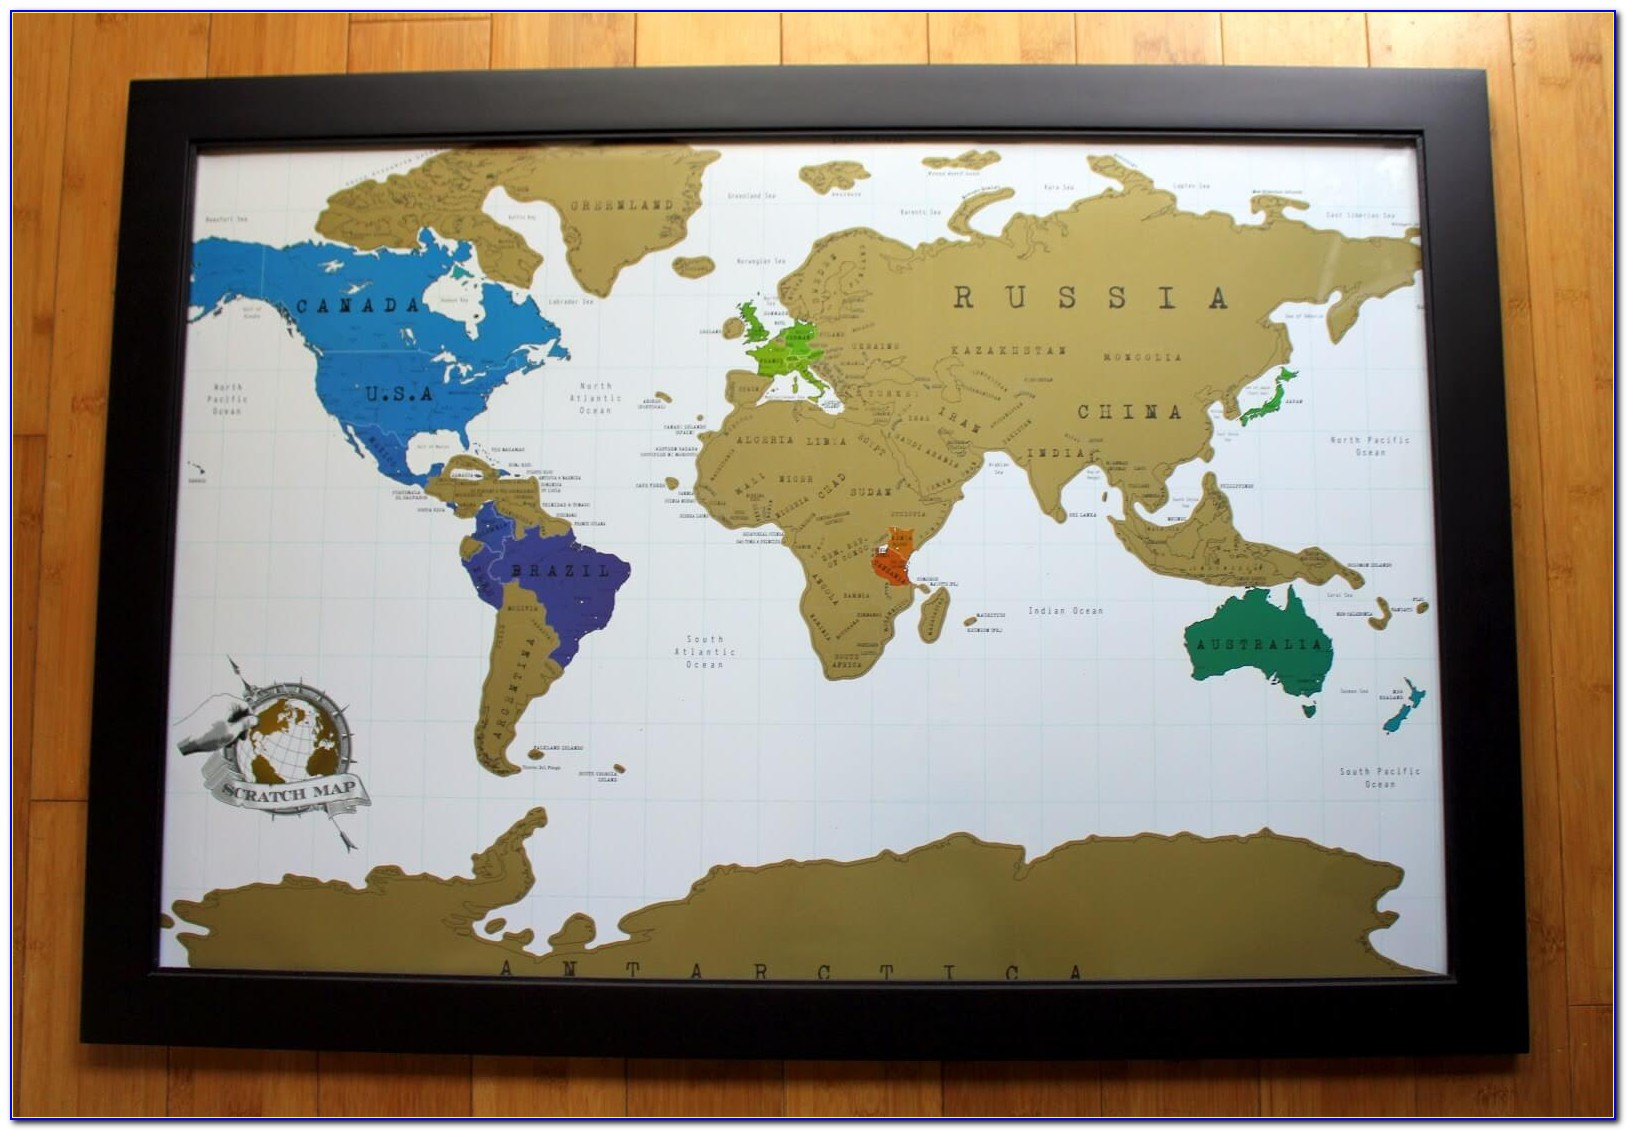 Luckies Scratch Map Frame Size